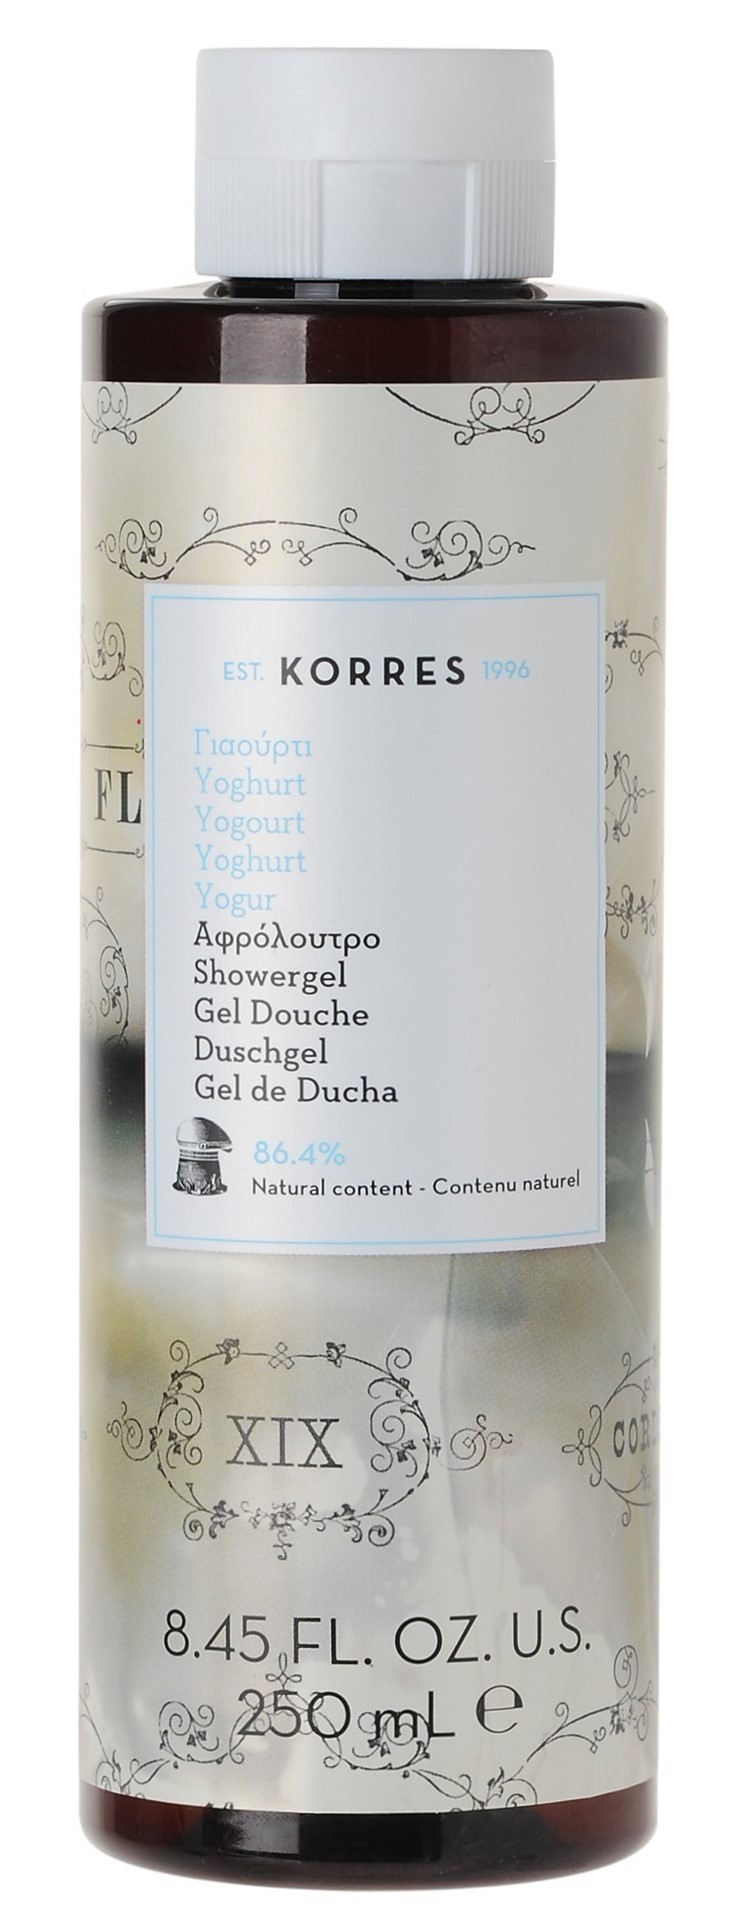 KORRES NEW! Yoghurt Shower Gel June 2017.jpg